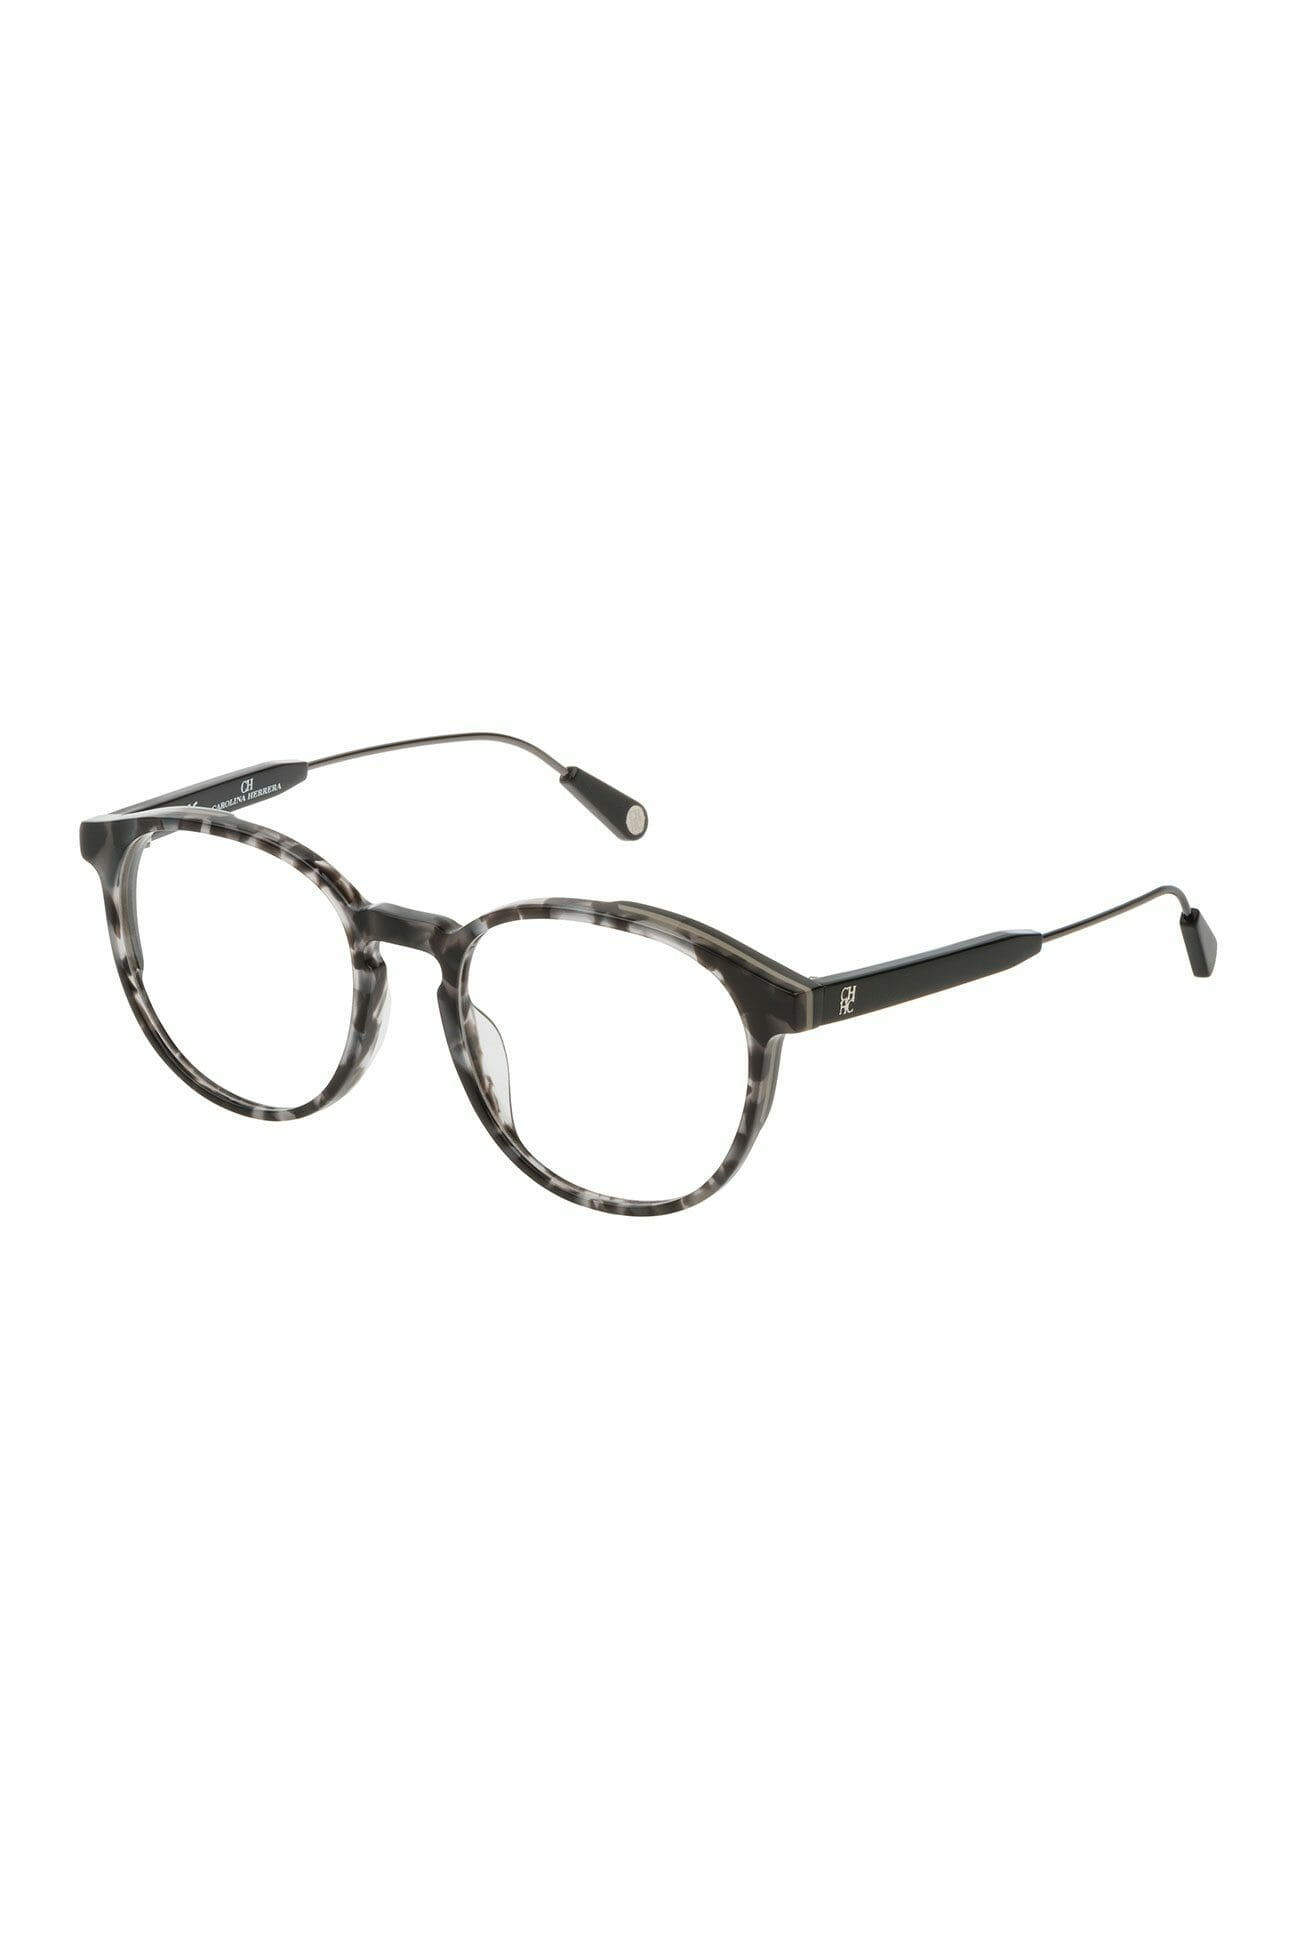 CH-Carolina-Herrera-Eyeglasses-optical-Men